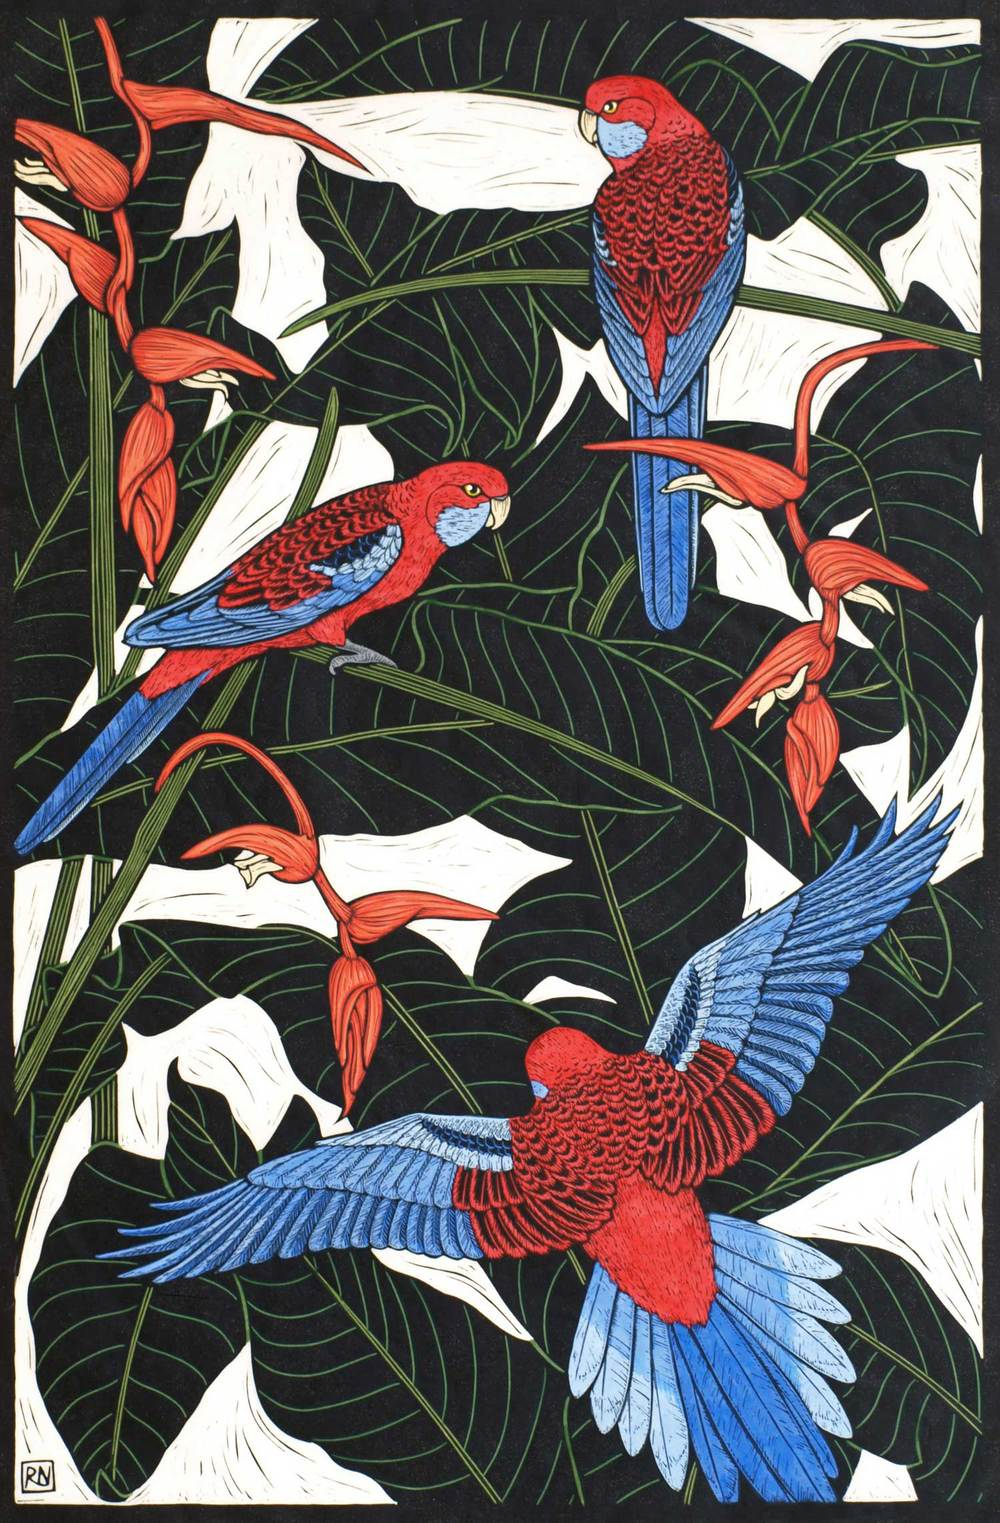 CRIMSON ROSELLA  74.5 X 49 CM    EDITION OF 50  HAND COLOURED LINOCUT ON HANDMADE JAPANESE PAPER  $1,550